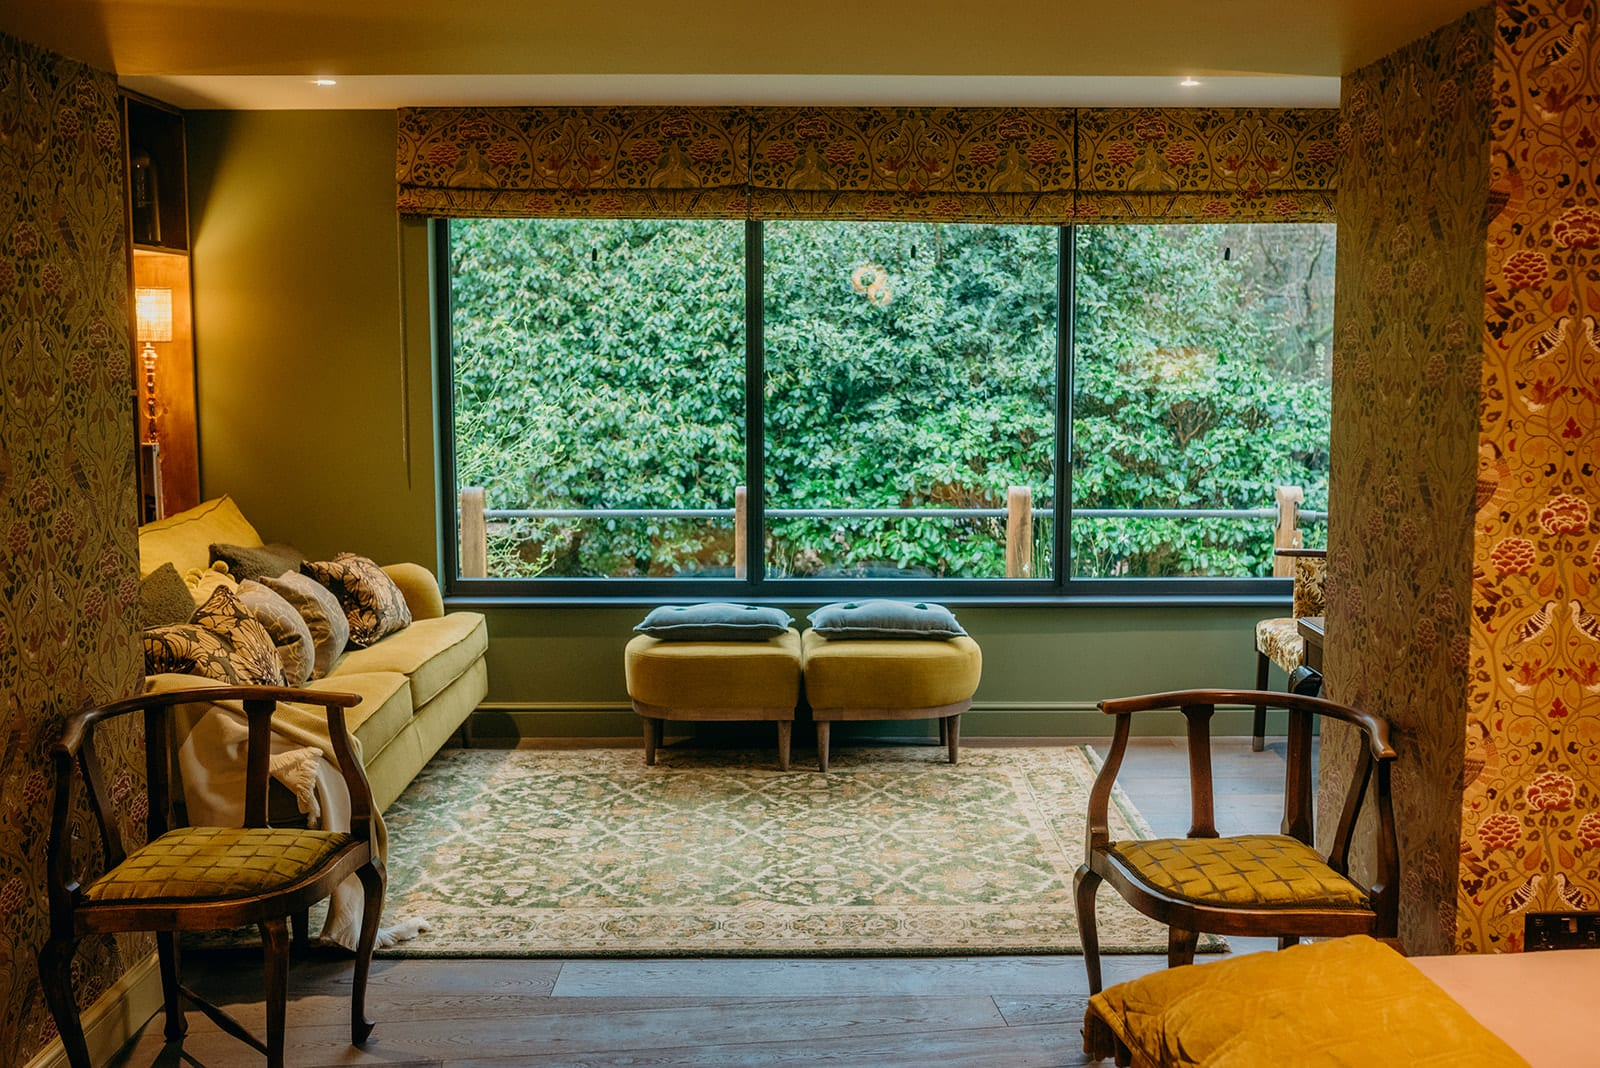 country house living room green rug William Morris wallpaper mustard sofa wood floor